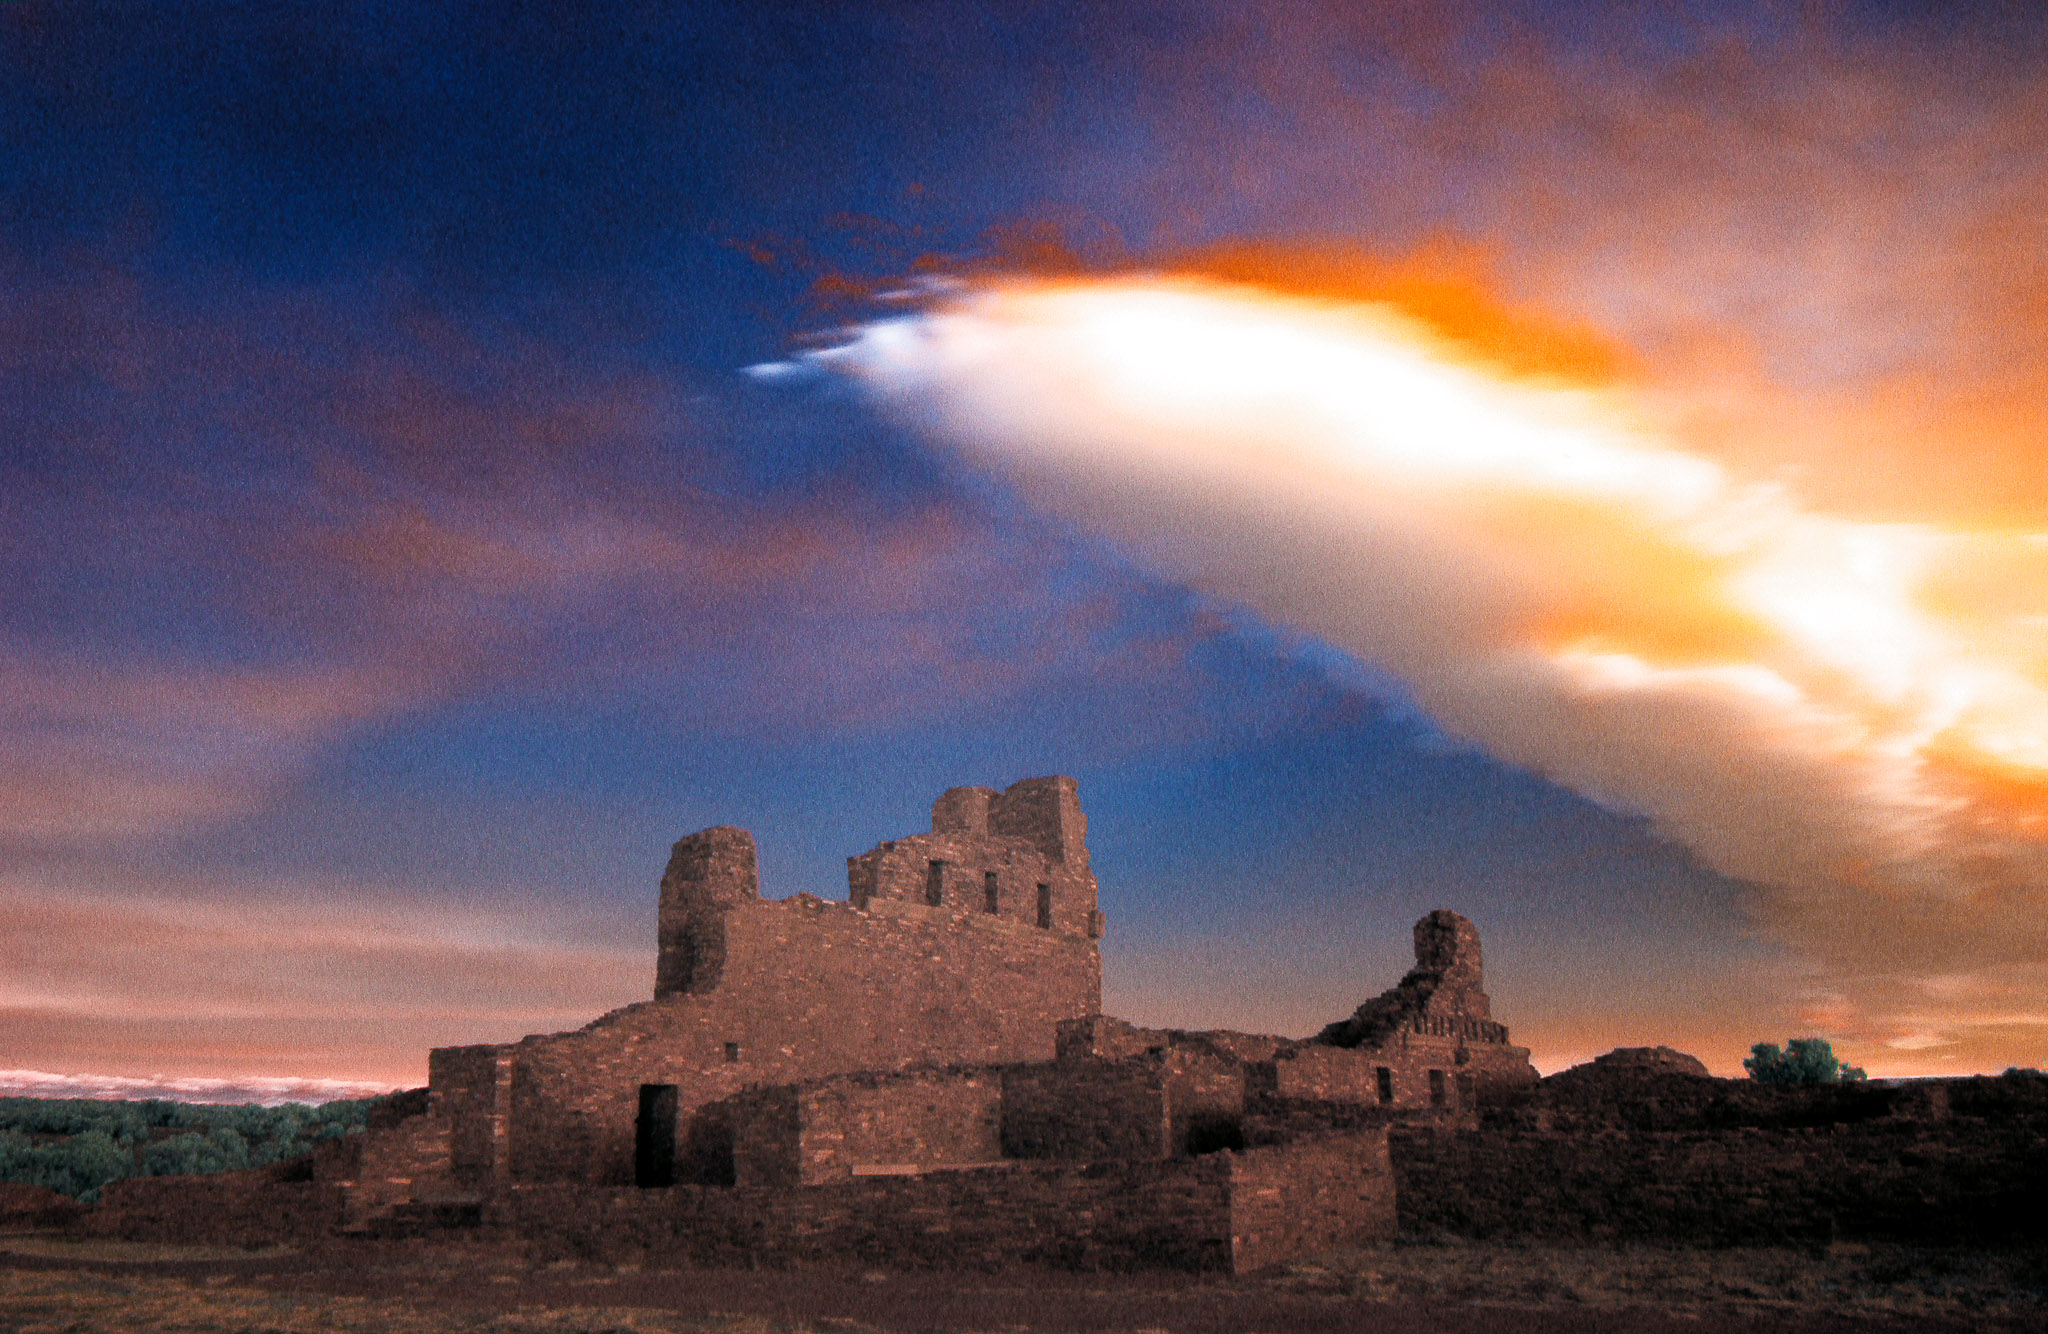 Abo Mission Ruins at Sunrise, New Mexico